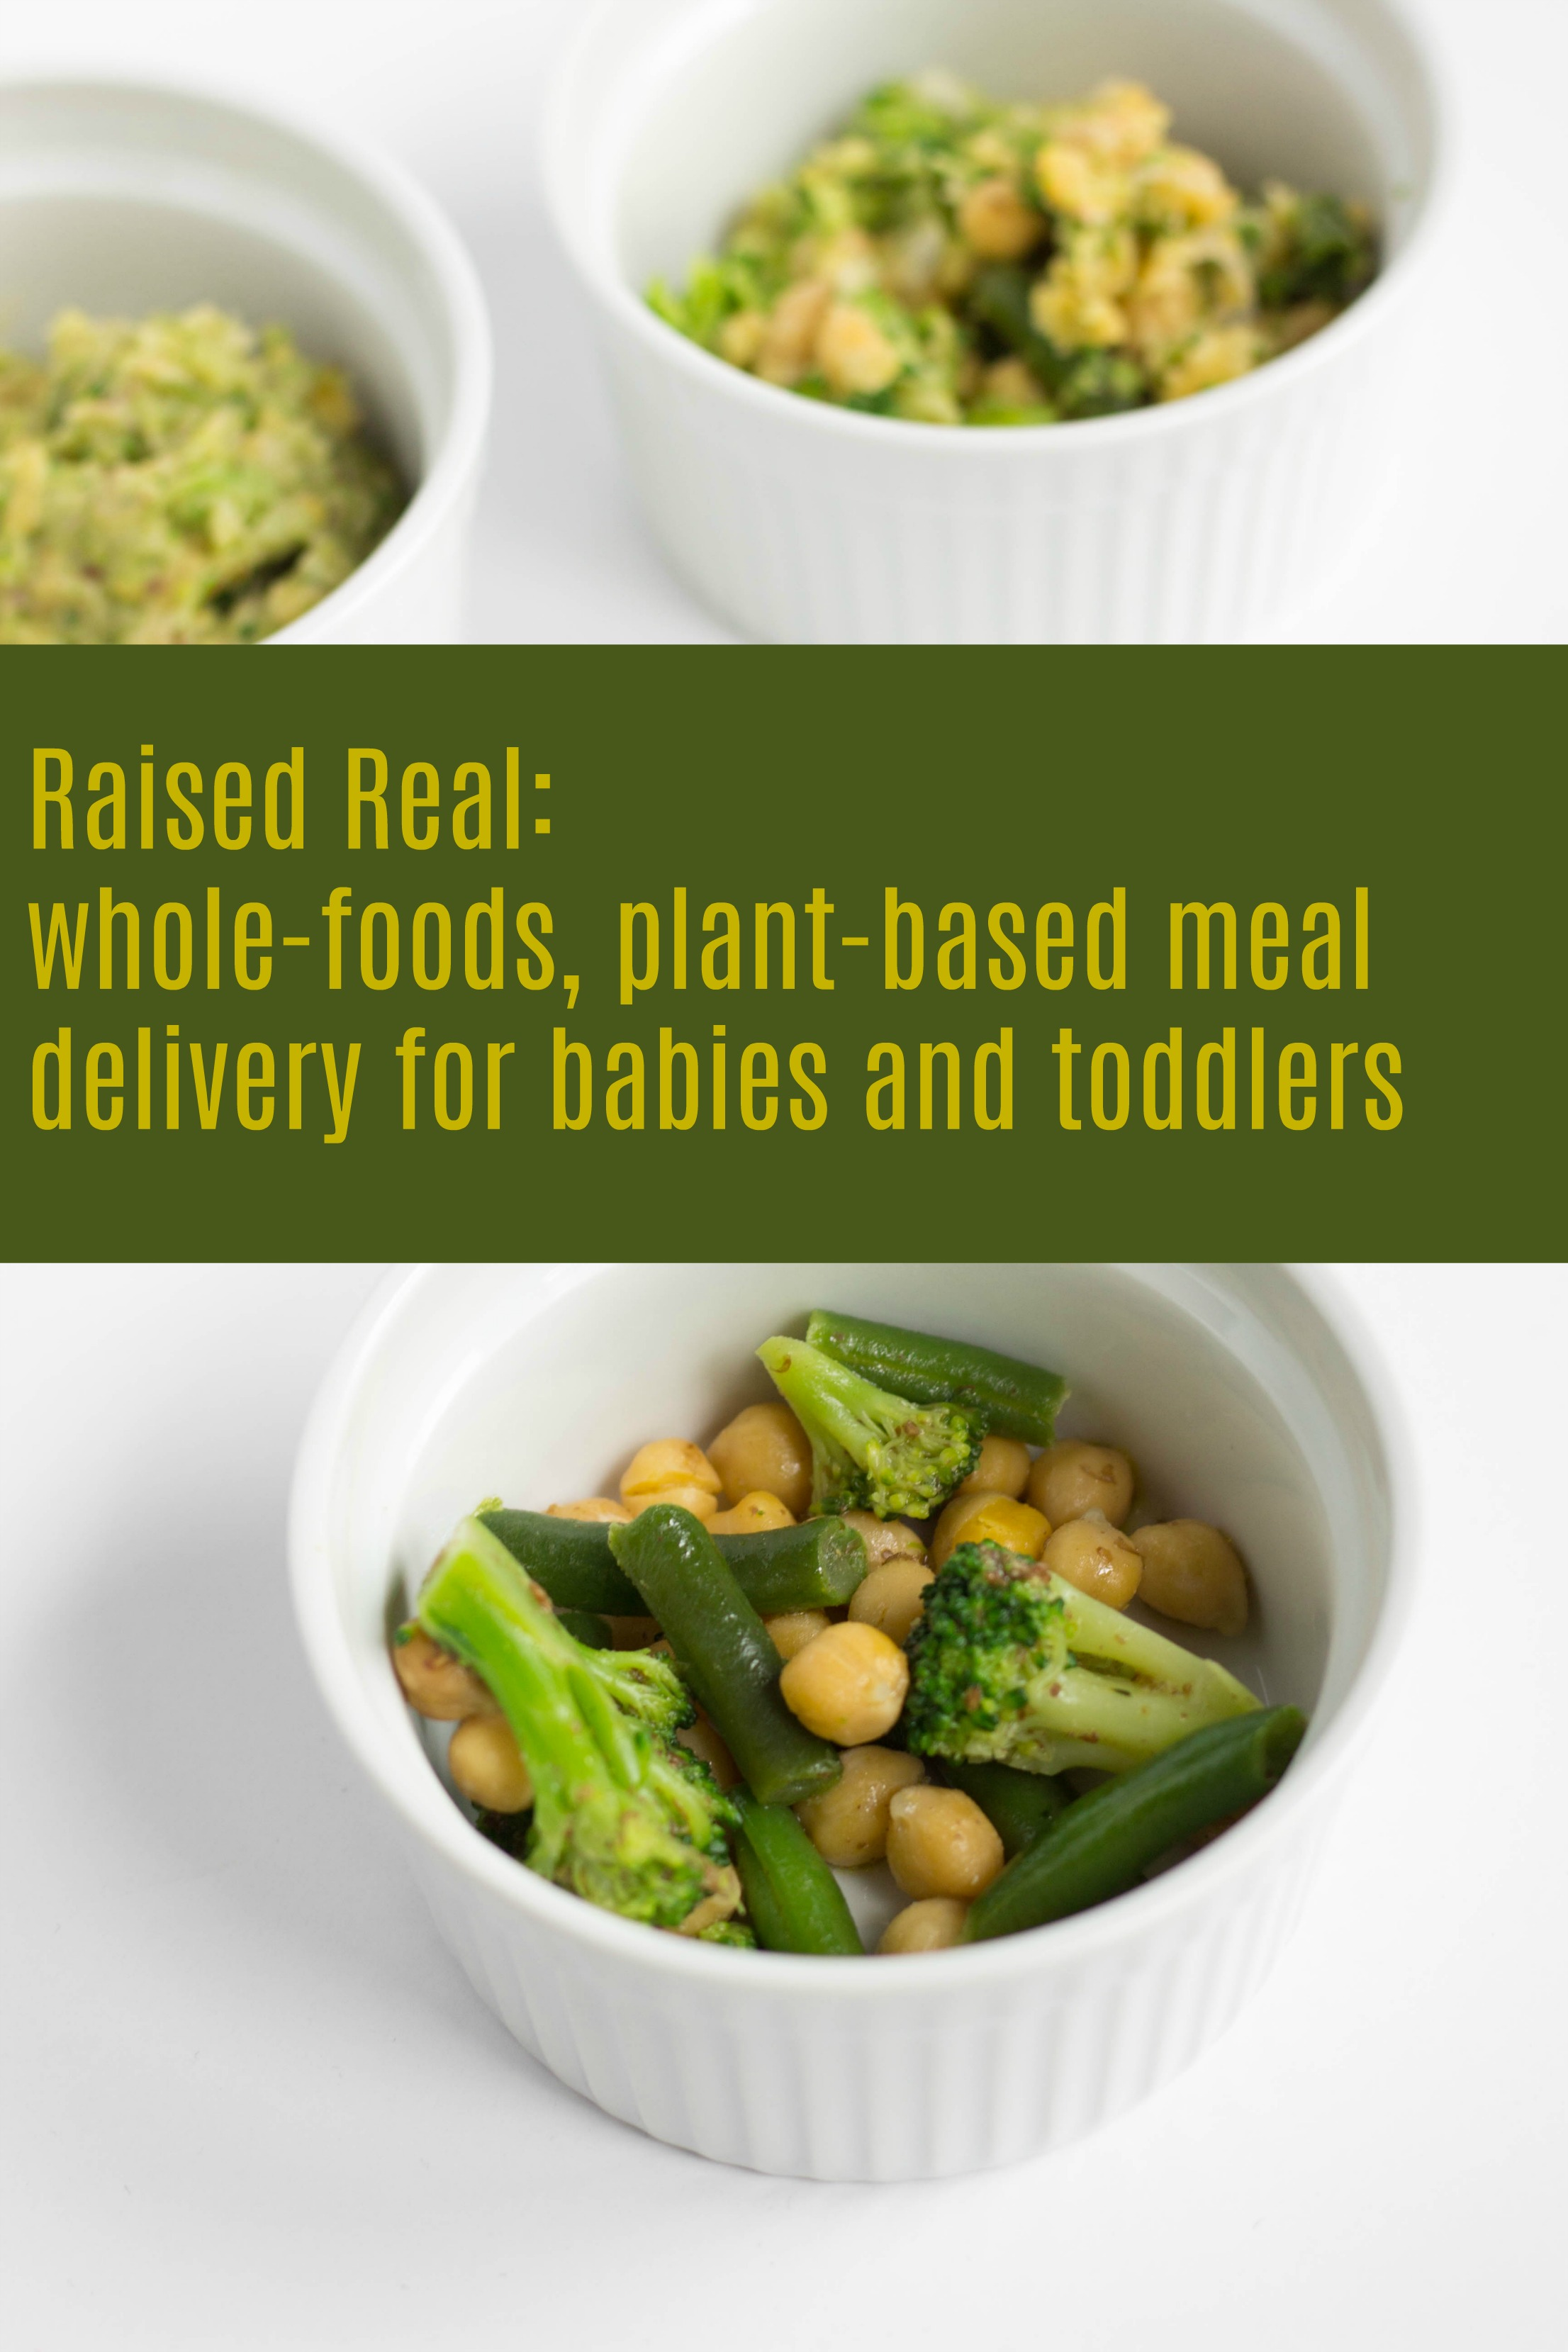 #ad Raised Real offers an easy, whole-foods feeding solution for your little one. It's nutritionally balanced and convenient. Raised Real Product Review by Stacey Mattinson Nutrition